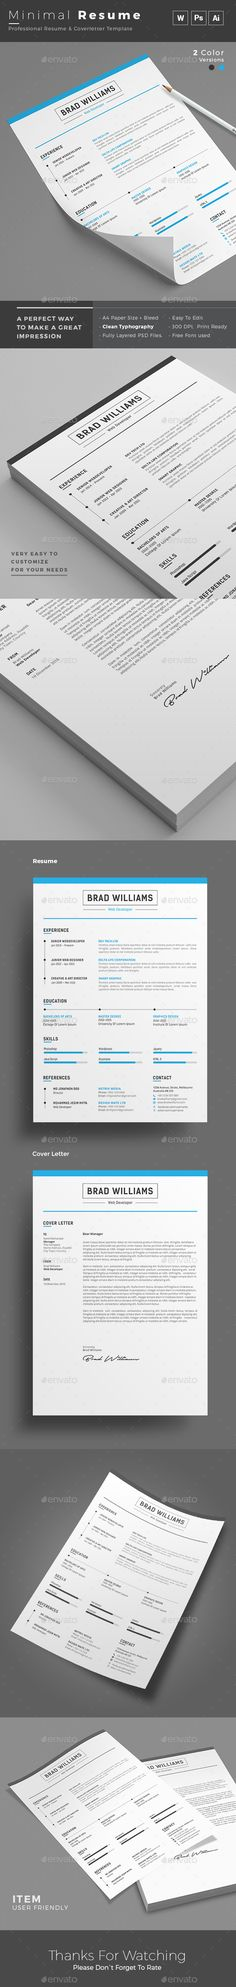 MS WORD CV Template Resume Template + Cover Letter PSD + AI - resume template microsoft word download